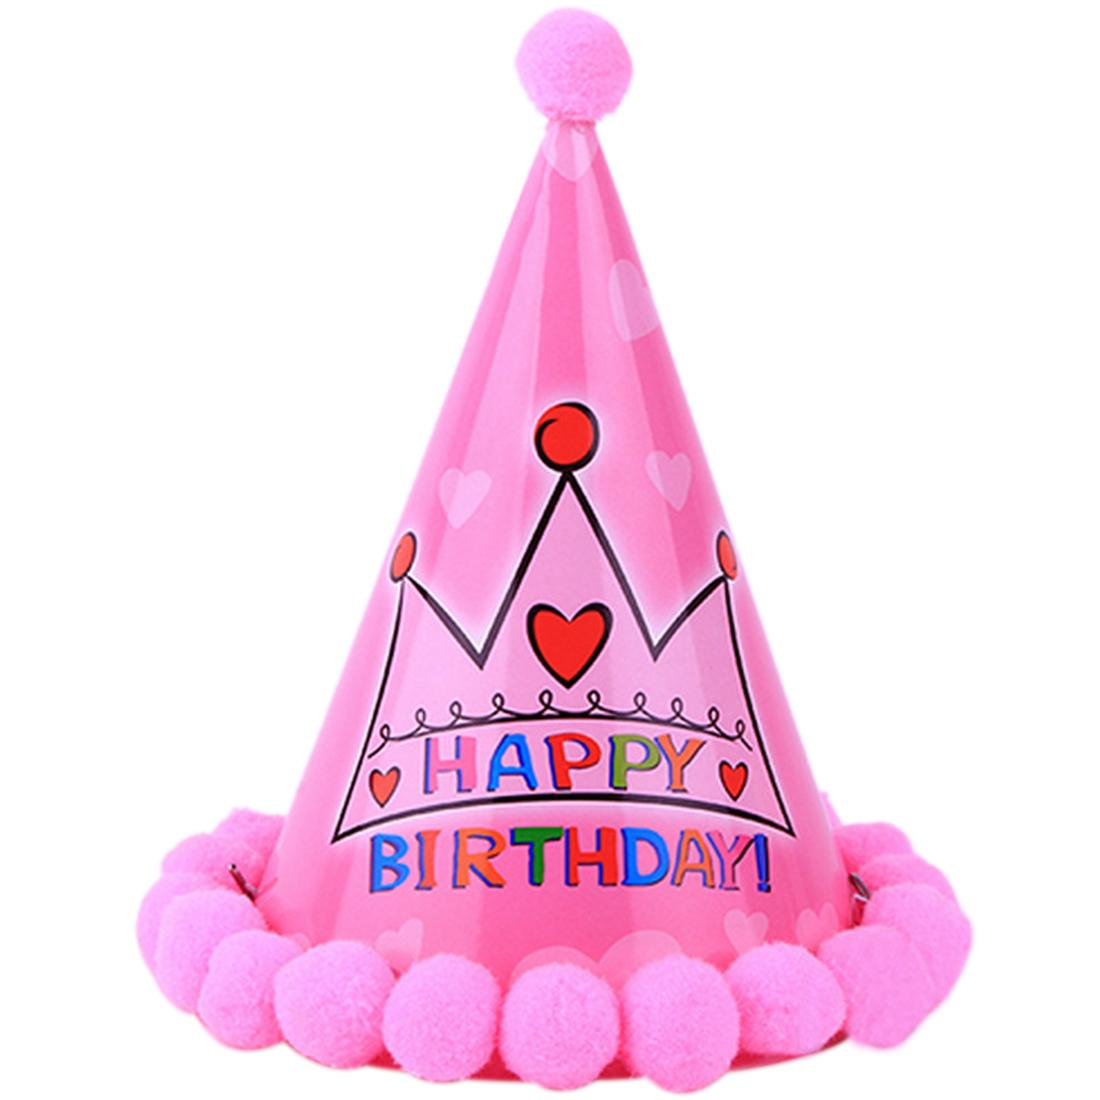 birthday hat photo ; wholesale-paper-party-cone-hat-dress-up-girls